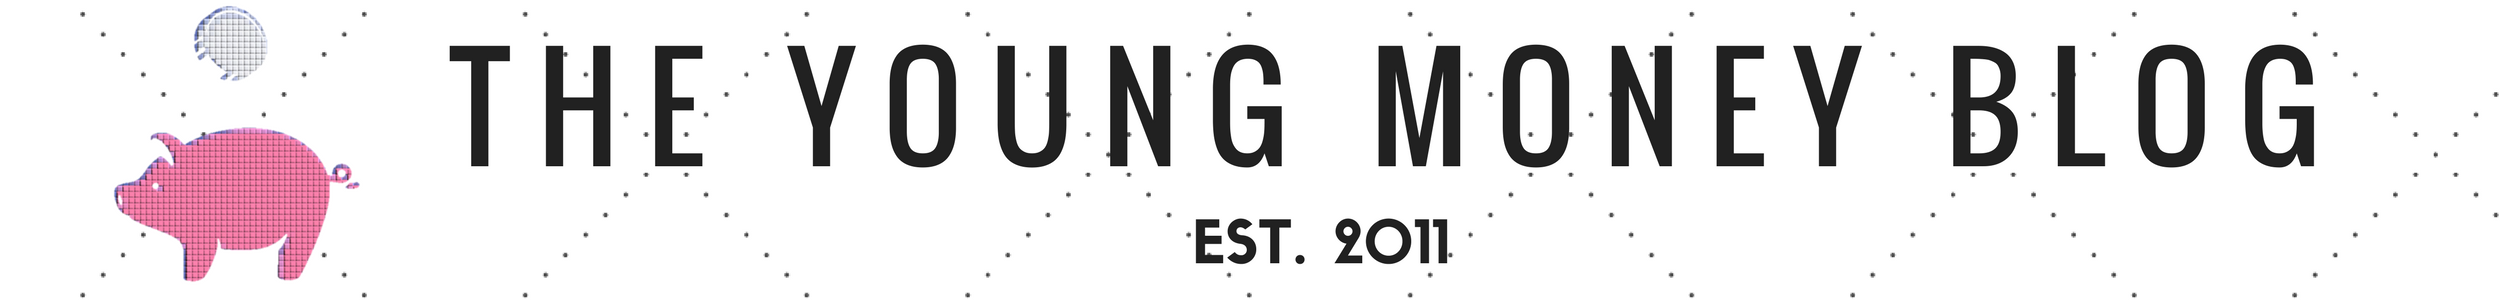 The Young Money Blog Logo